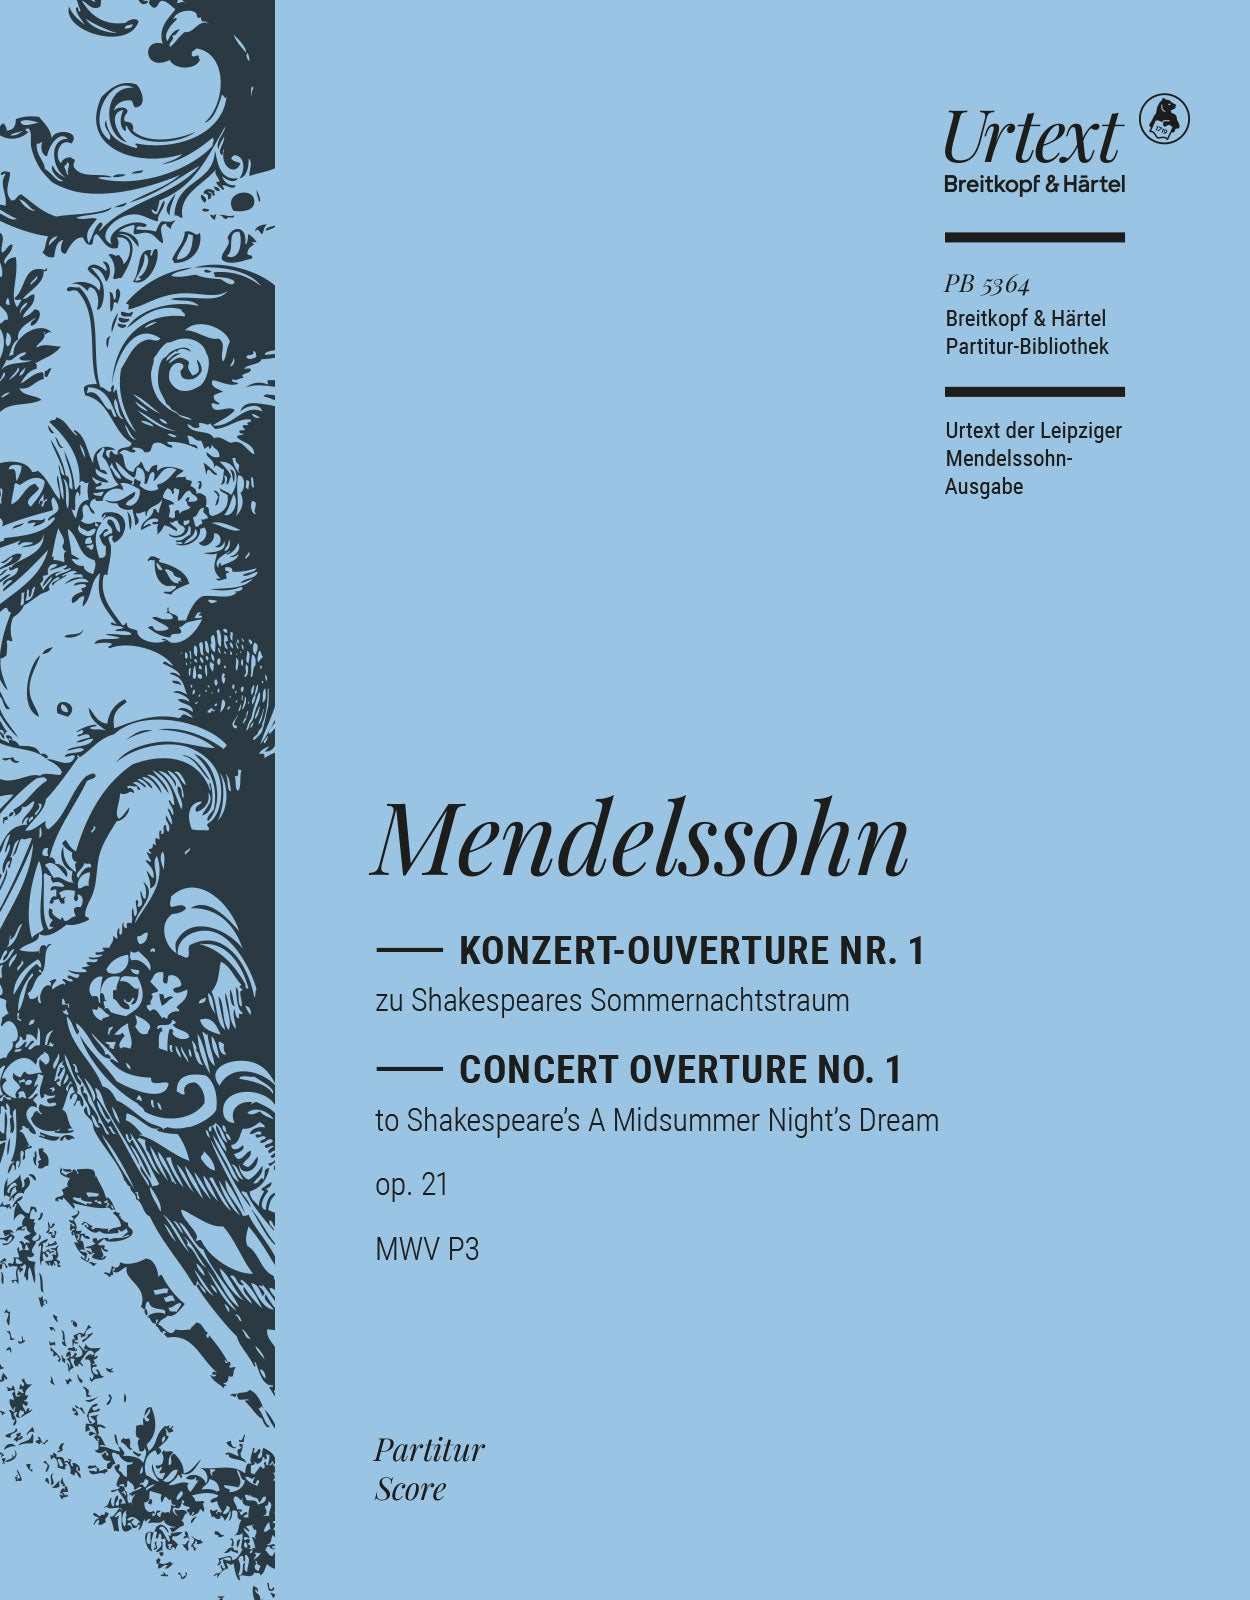 Mendelssohn: A Midsummer Night's Dream Overture, MWV P 3, Op. 21